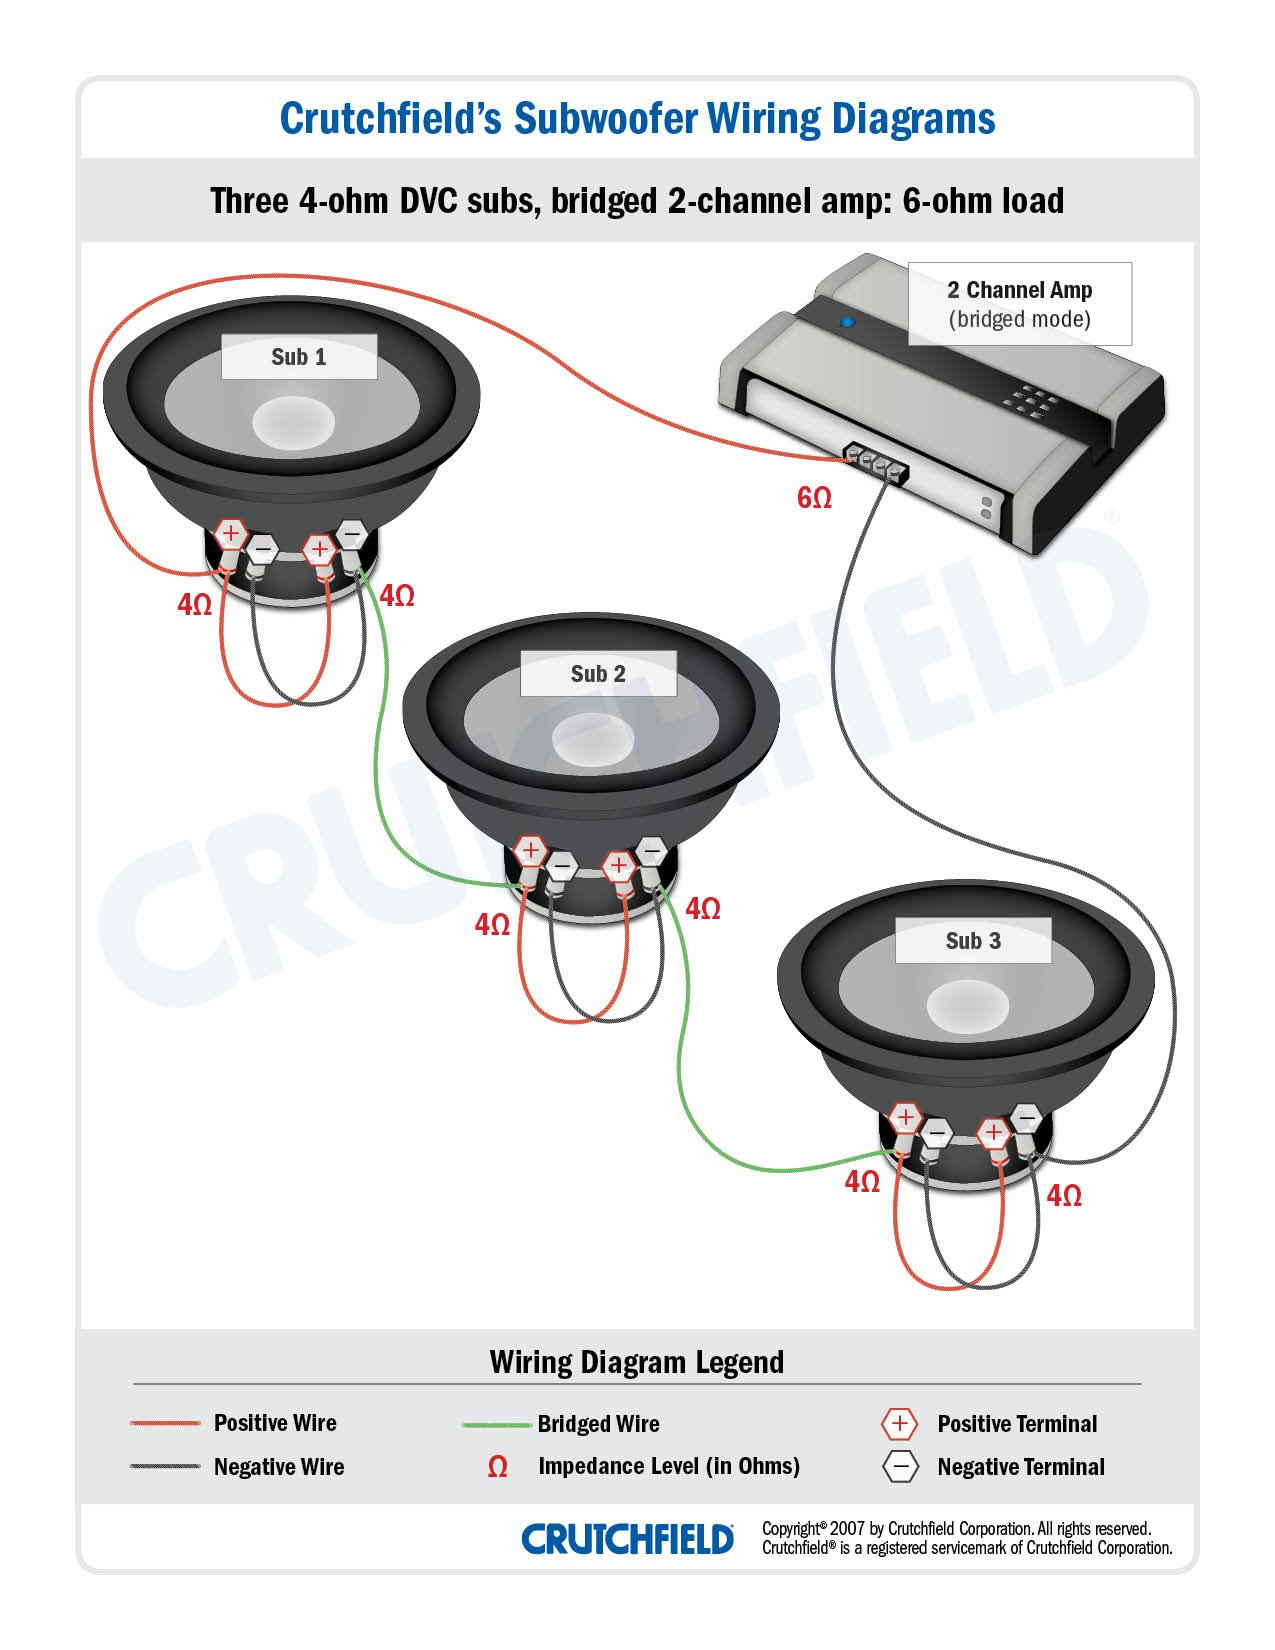 3 DVC 4 ohm 2 ch how to match subwoofers and amplifiers Kicker Flat Subwoofers at nearapp.co